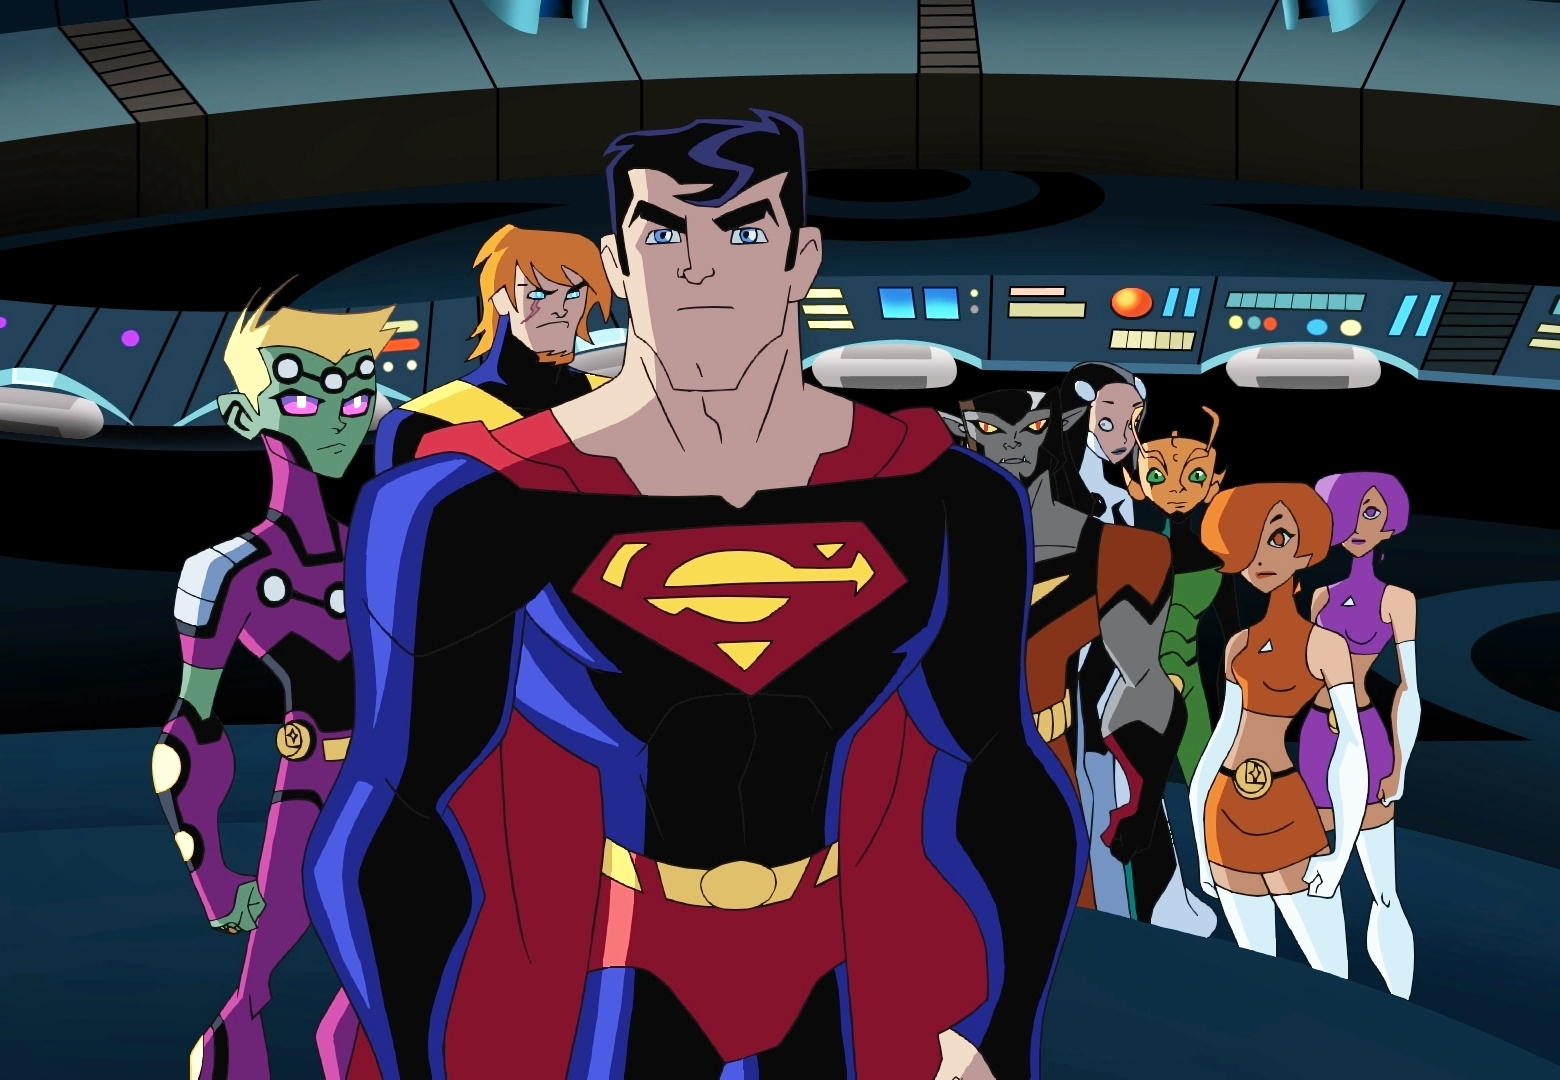 Top 20 Warner Bros. Animated Series From The 90s To Now - #UD 10